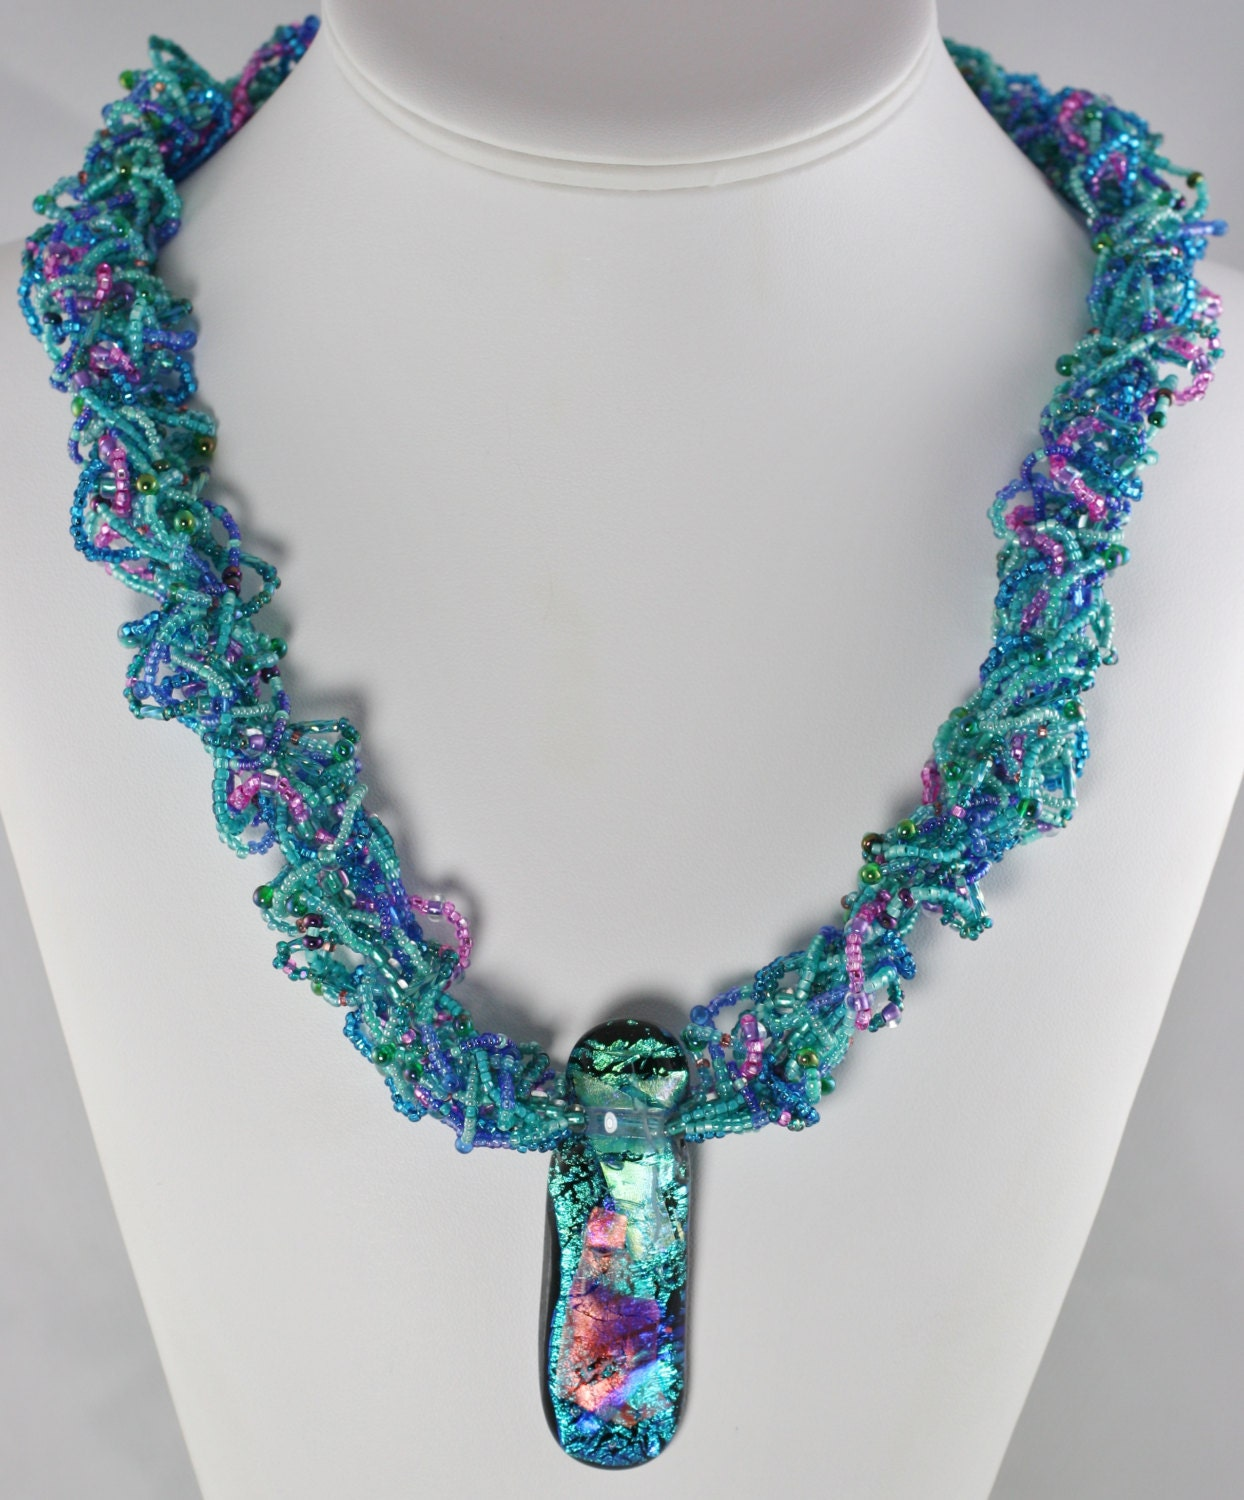 woven seed bead necklace with fused dichroic glass pendant and